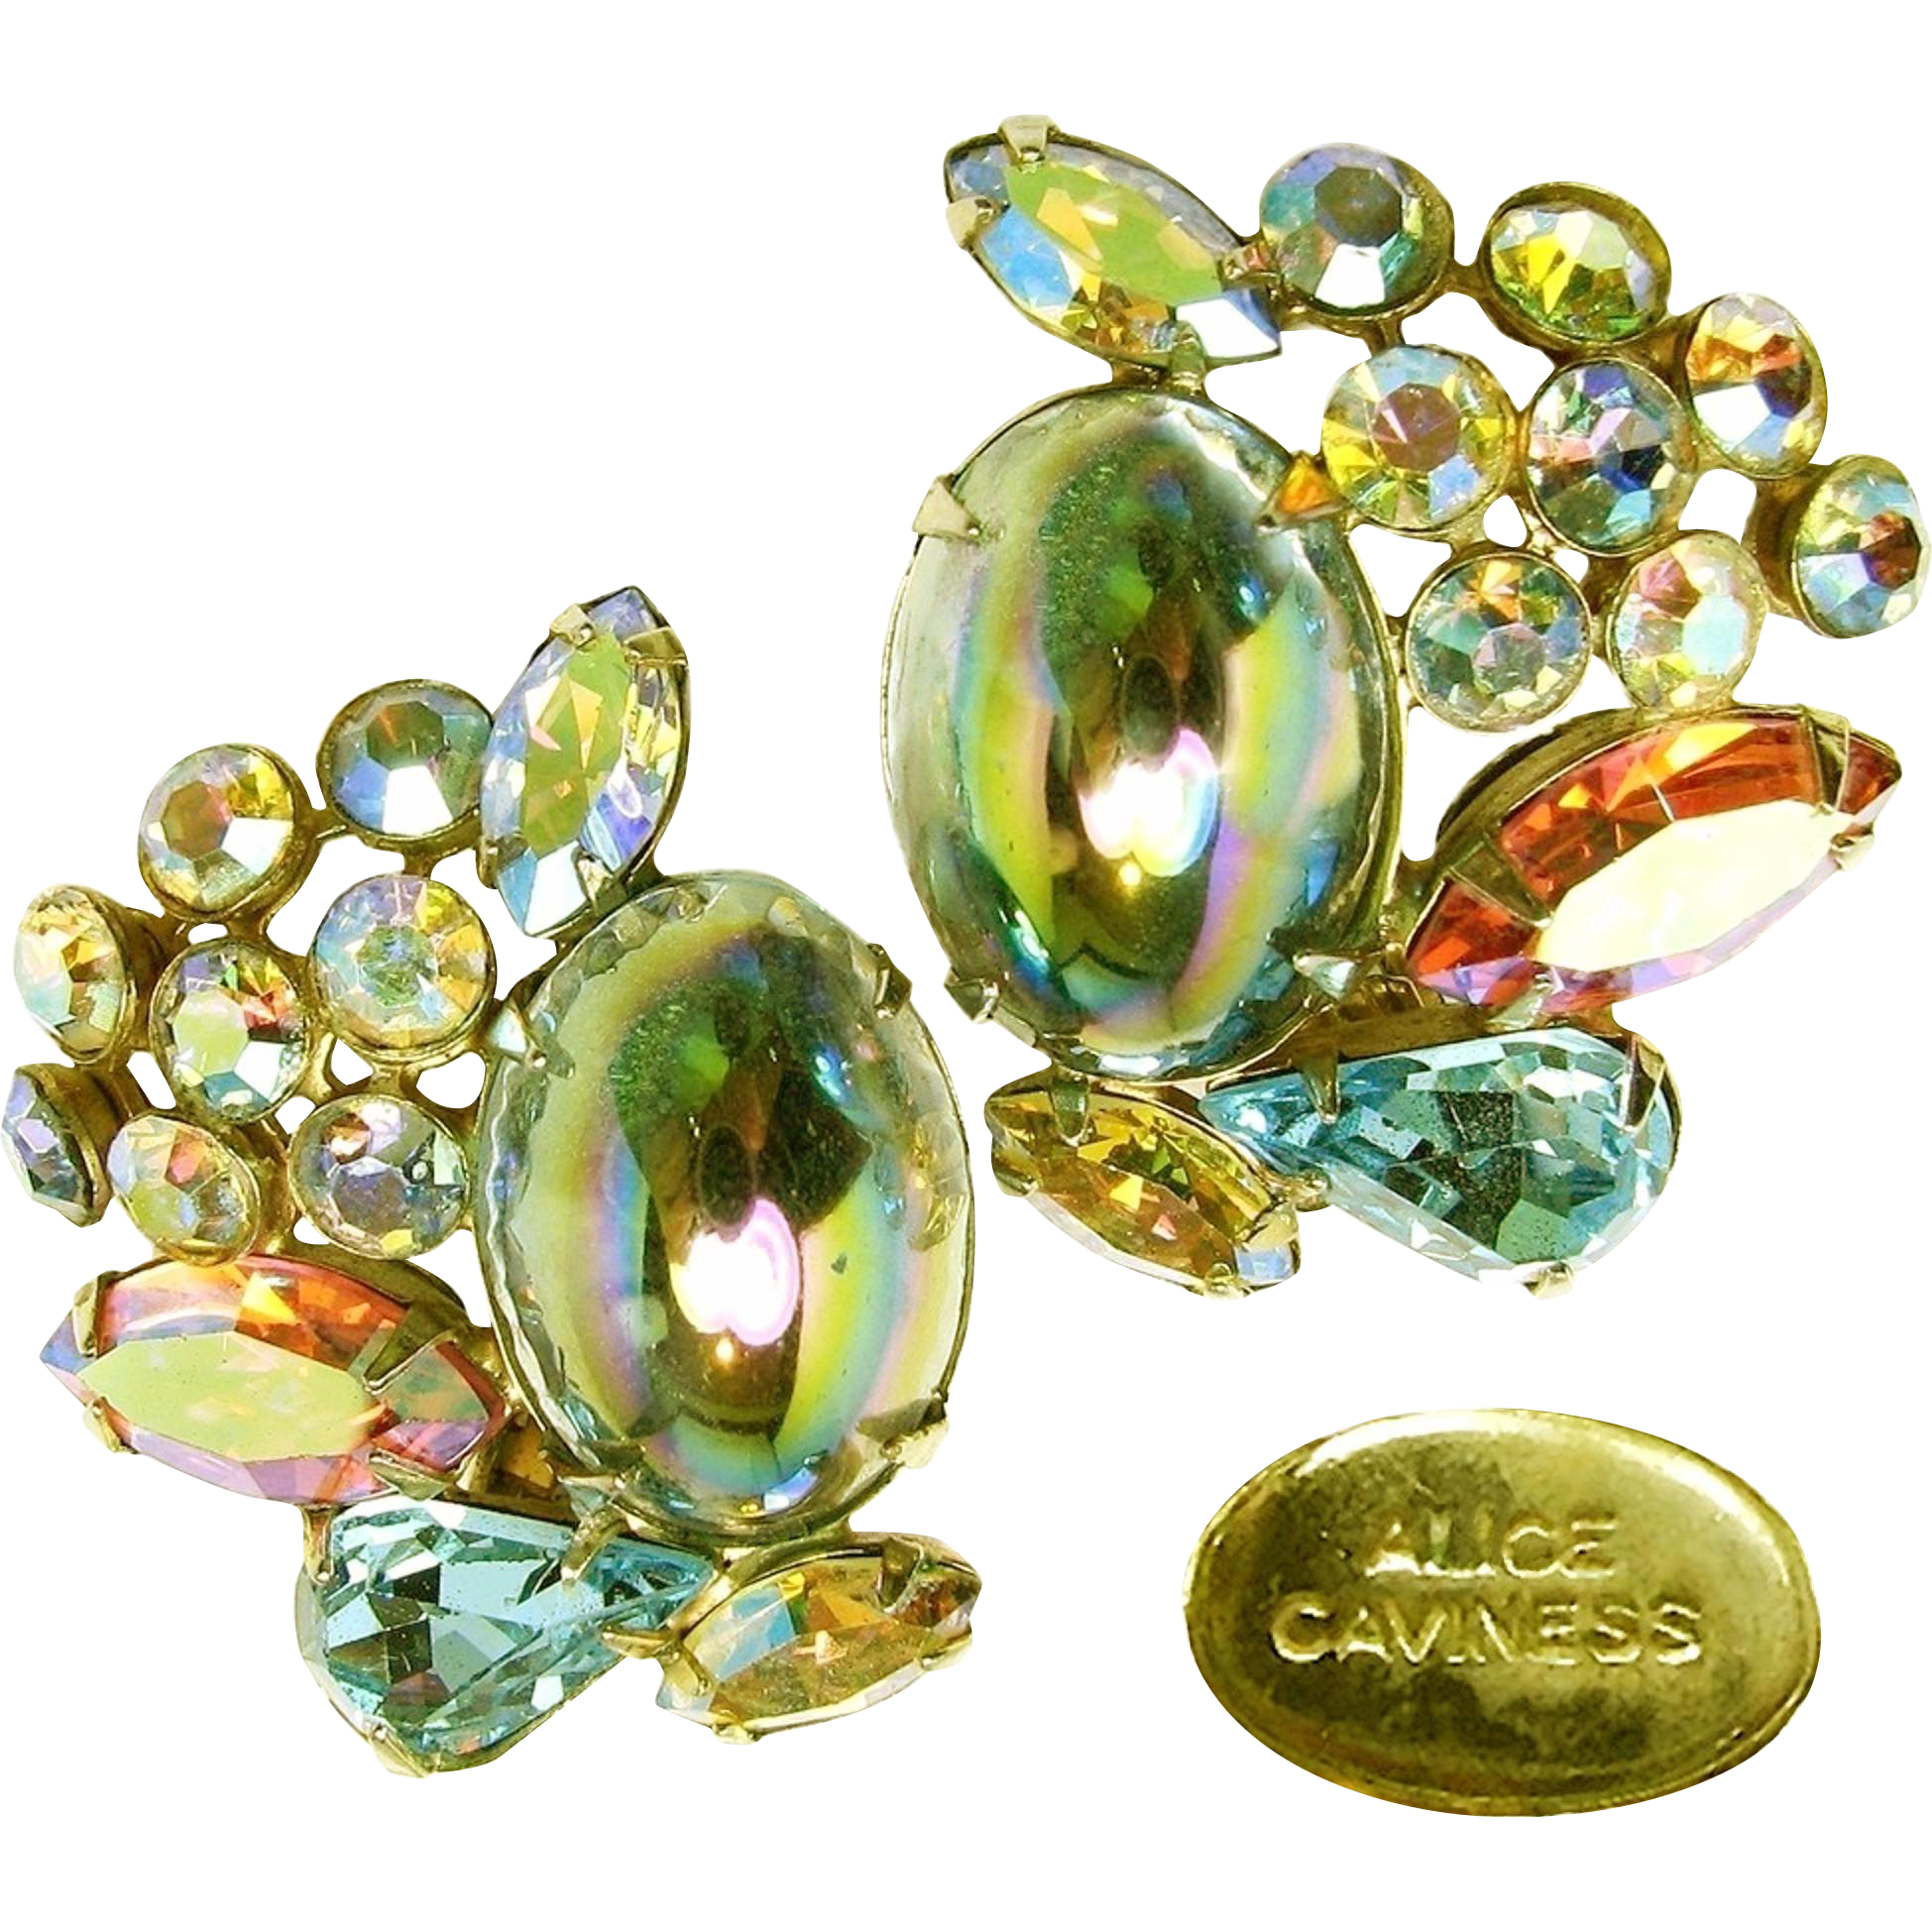 Vintage Alice Caviness watermelon glass stone and rhinestone earrings are the perfect statement earrings for any special occasion or dress up your denim, their in excellent condition too check these out with the scan able photos at brendastreasures on rubylane.com!